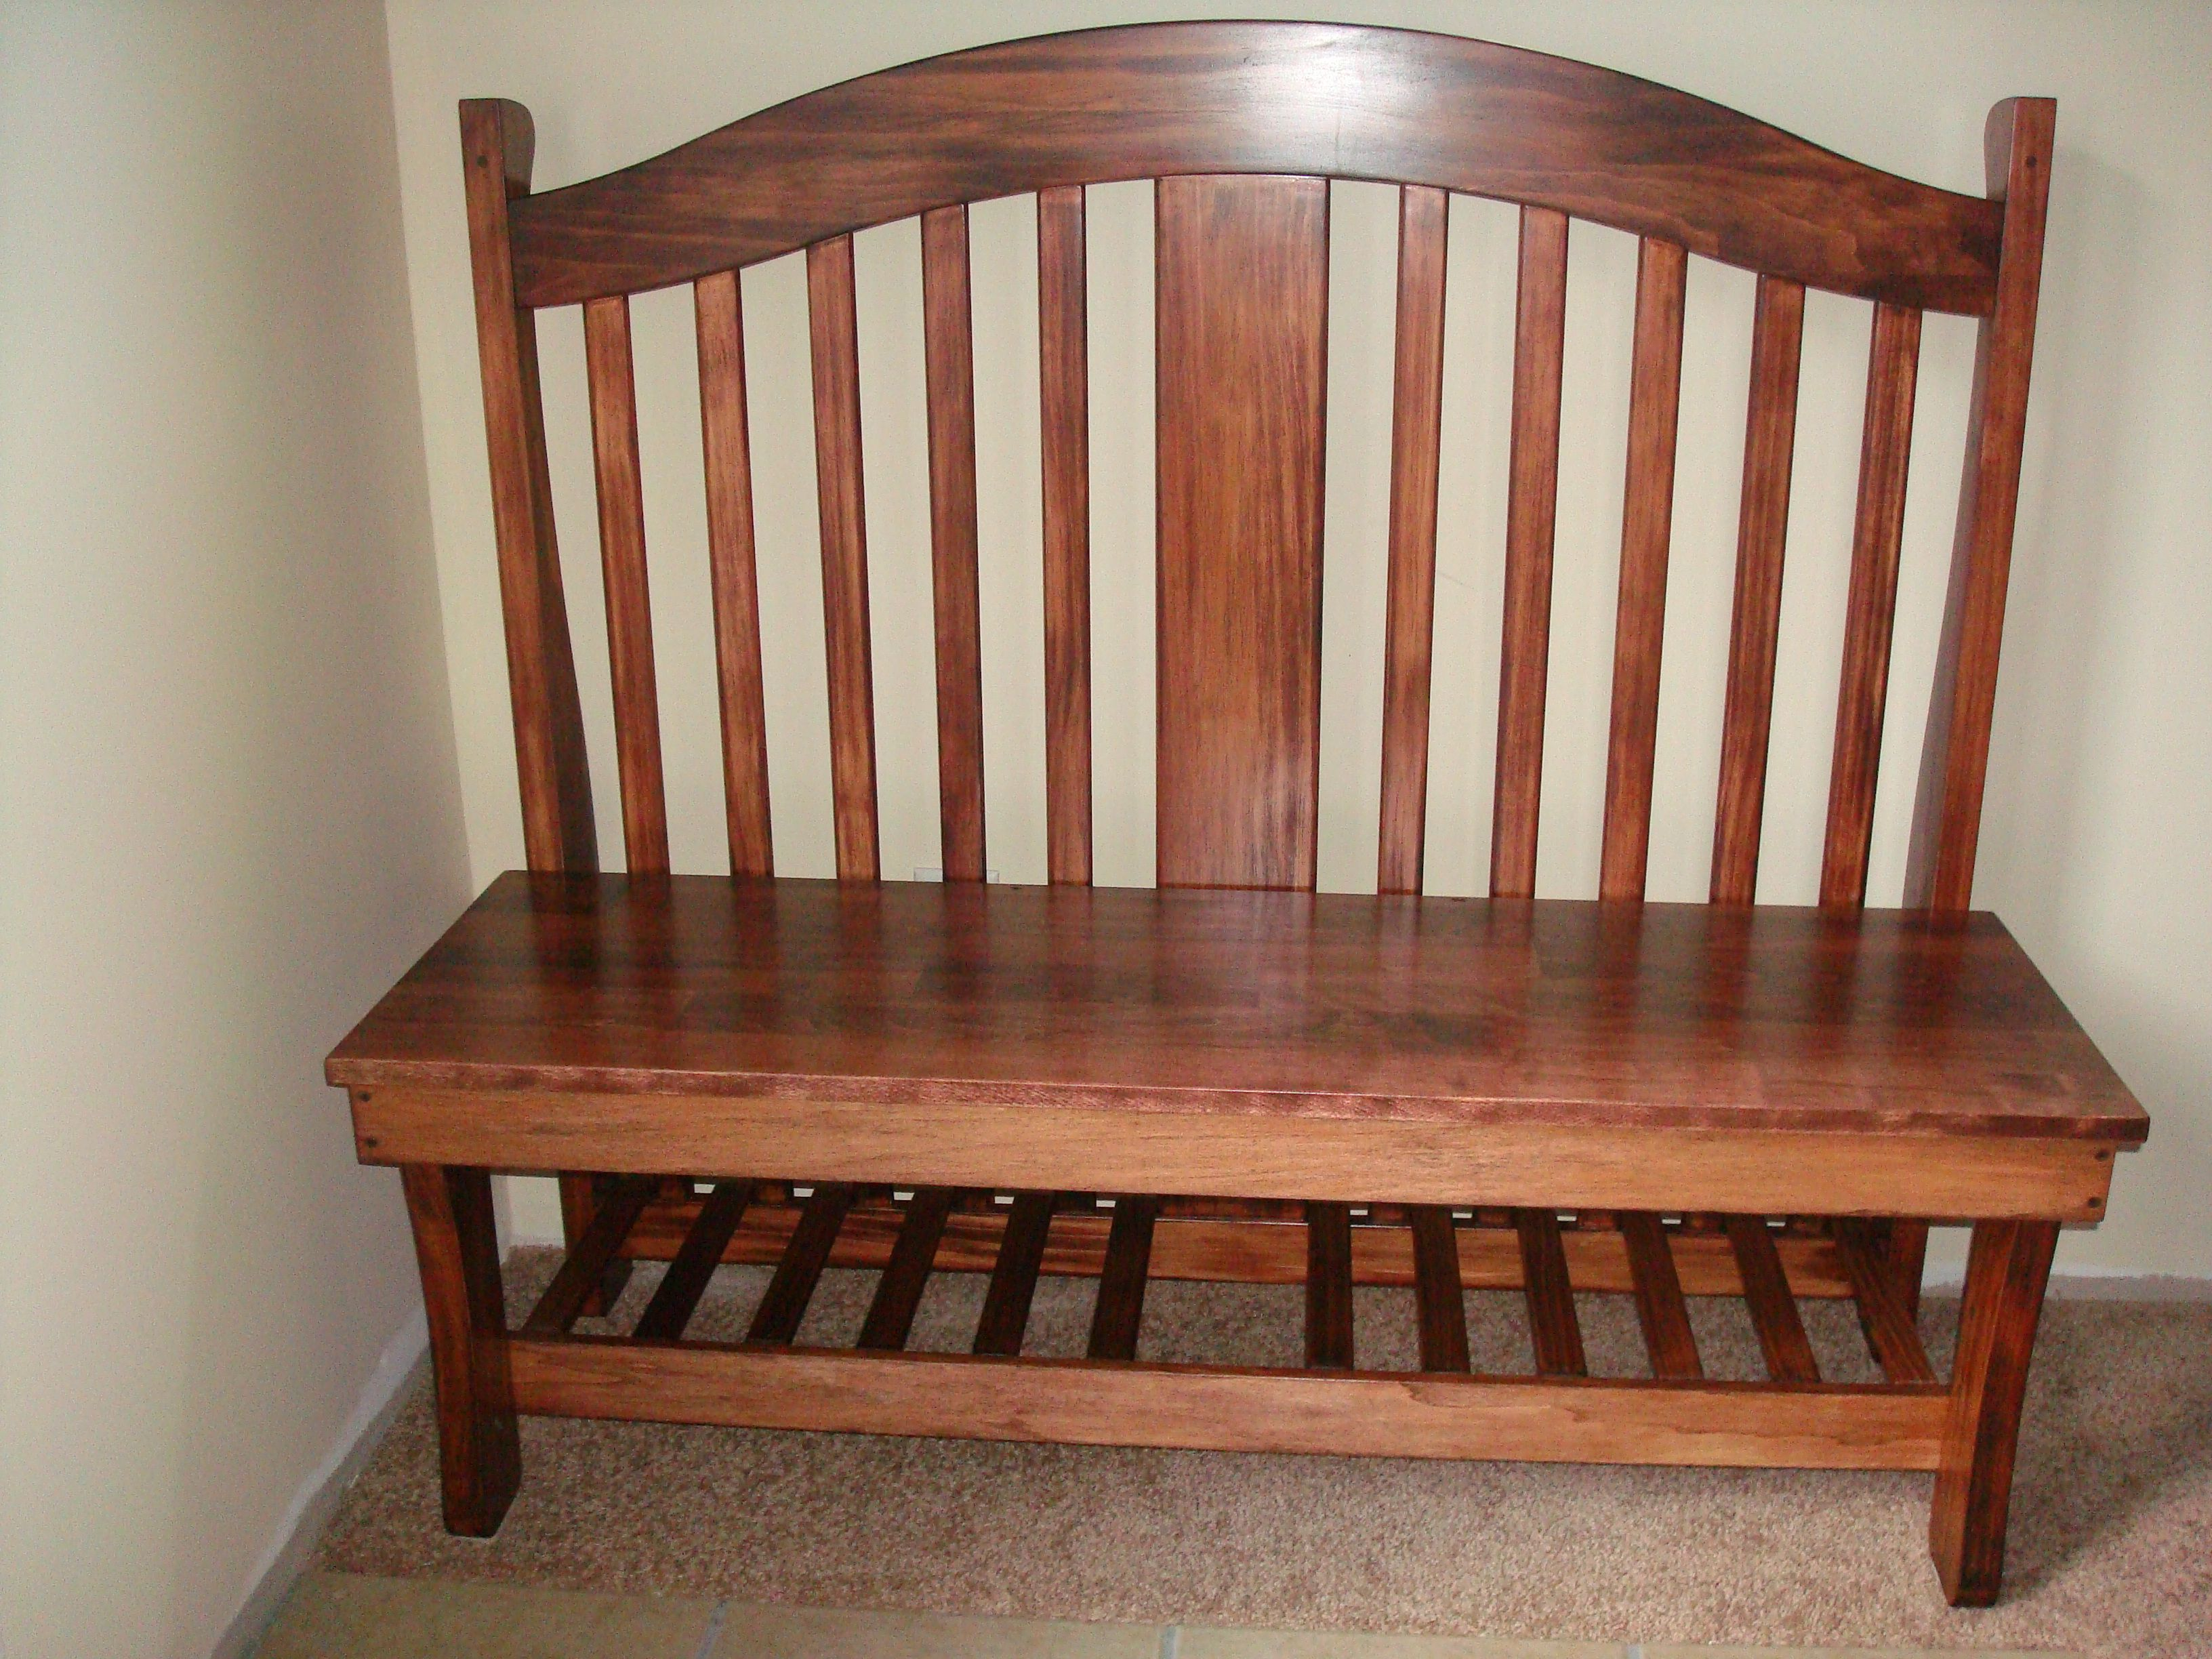 Repurposed crib into bench...my dad made this out of our old crib ...